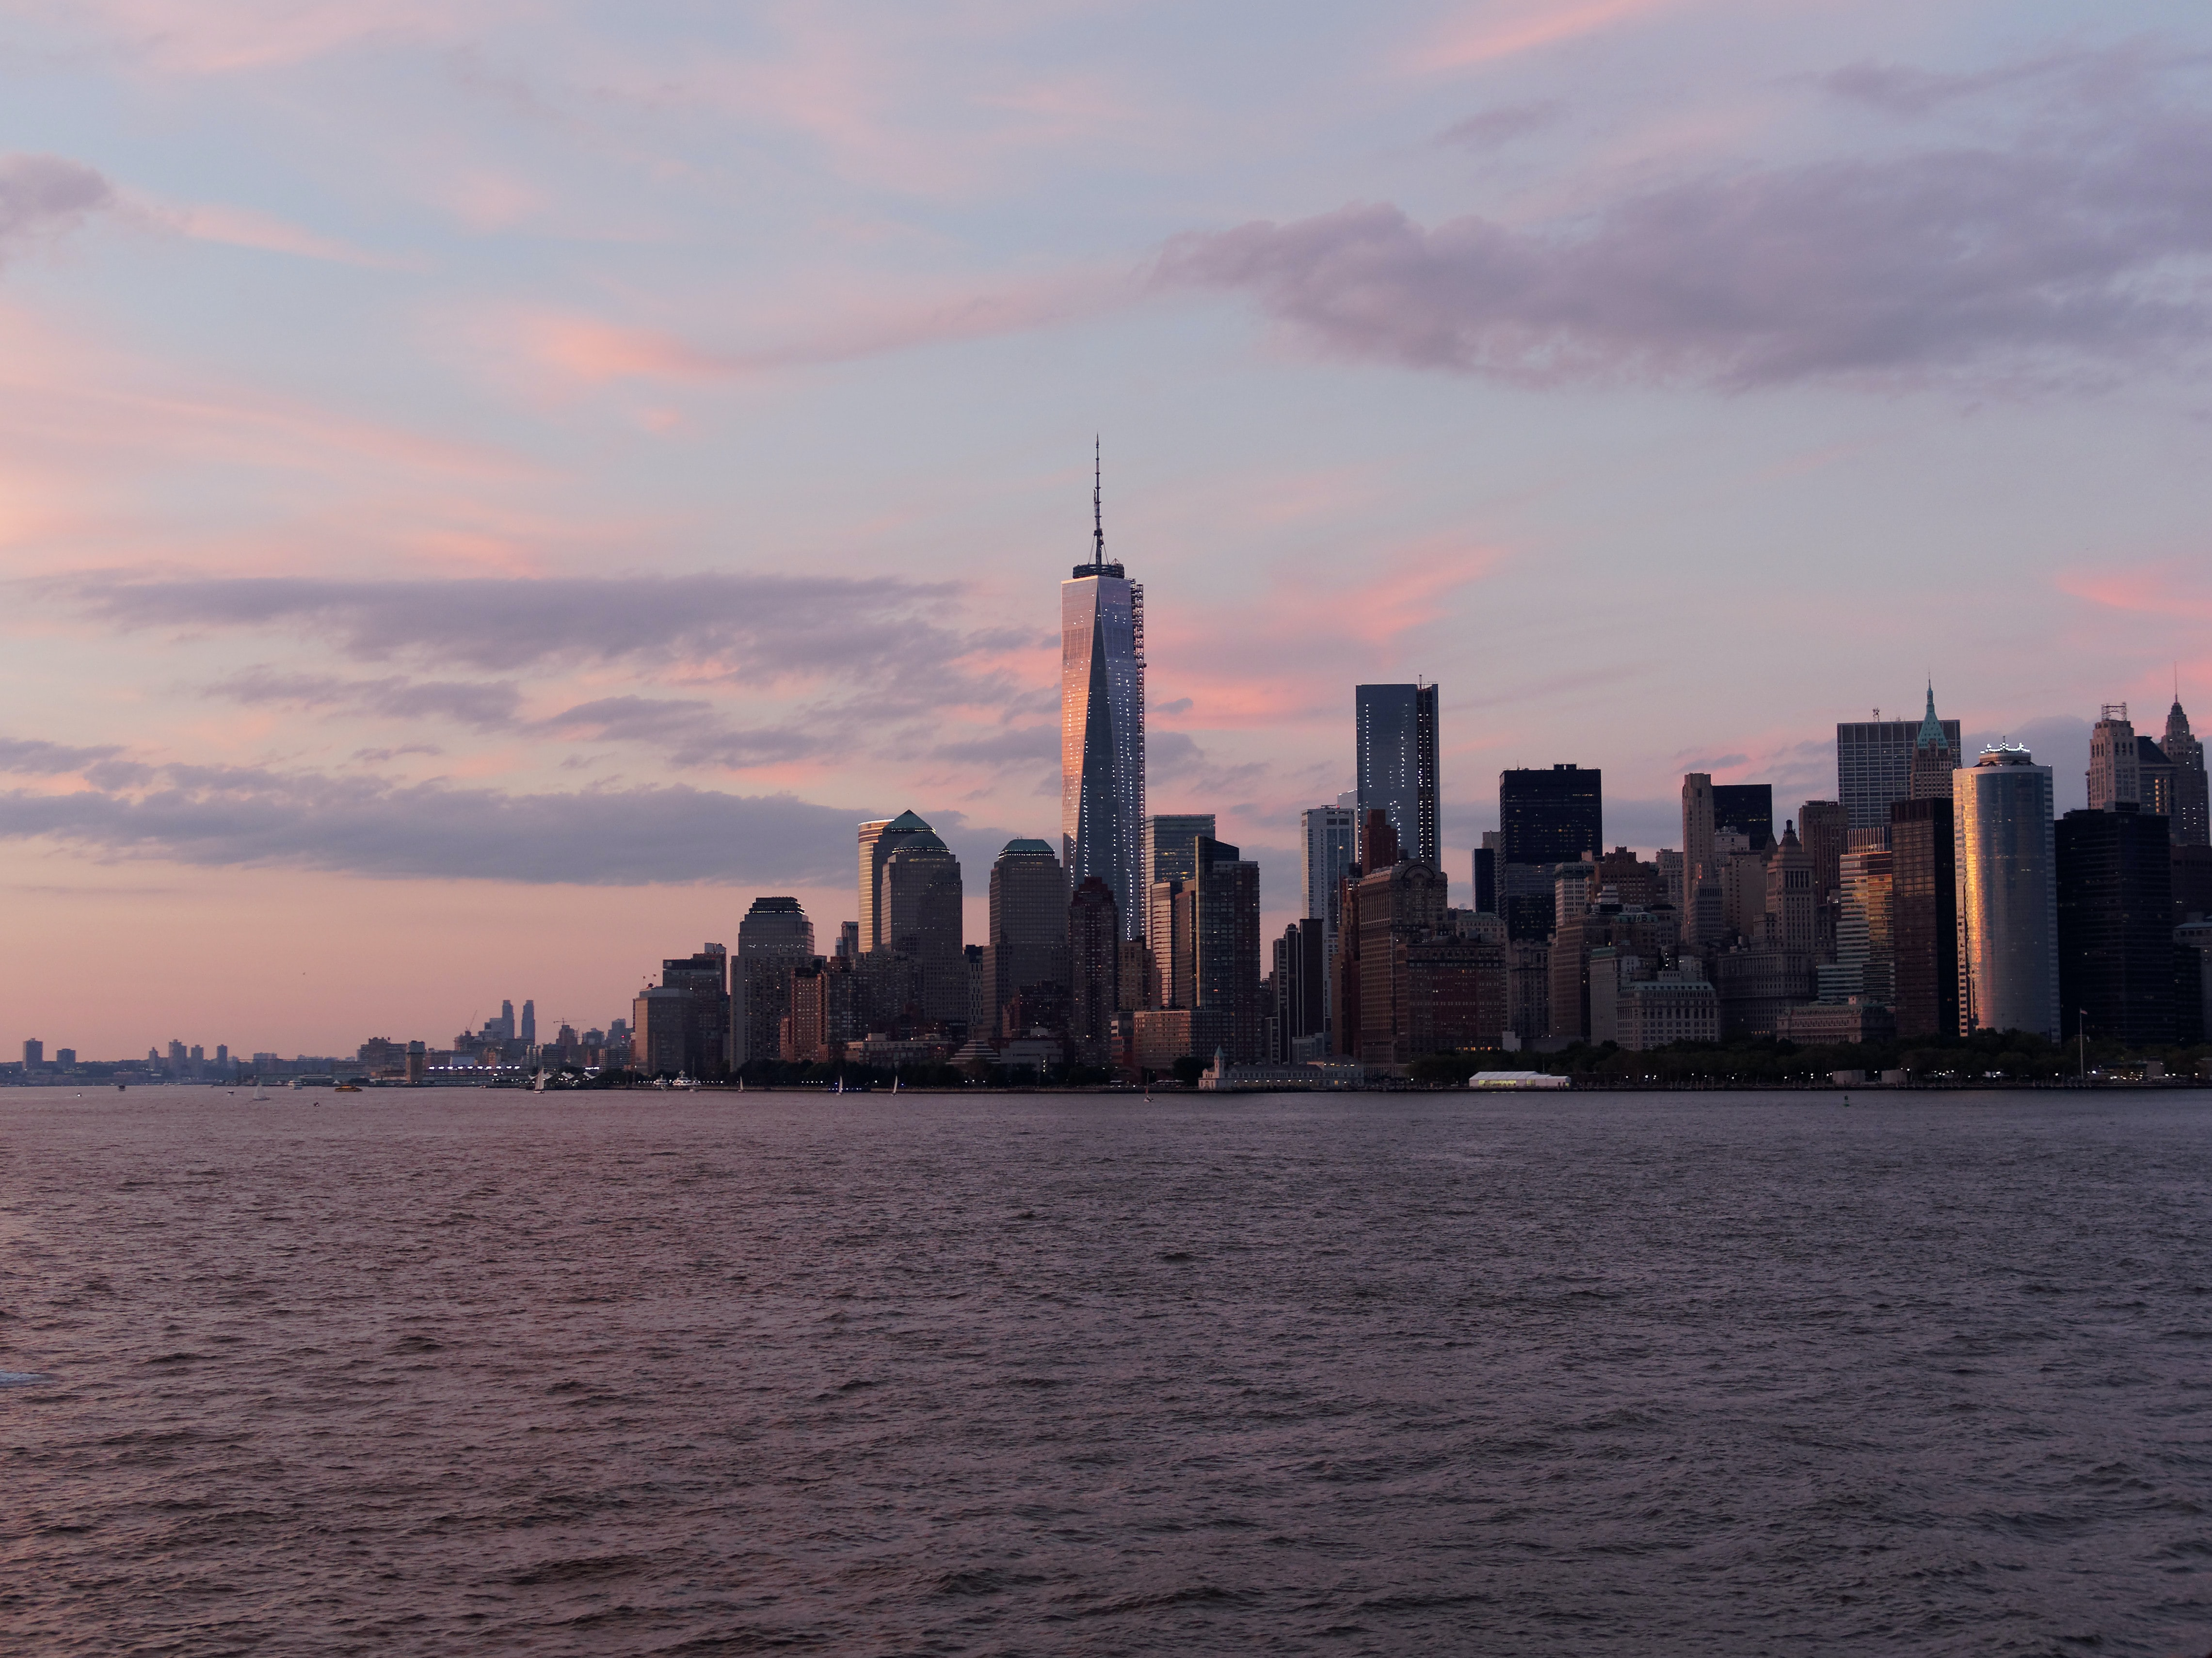 A shot of the freedom tower at dawn flaunting its architectural designs by the Oceanside among other skyscrapers